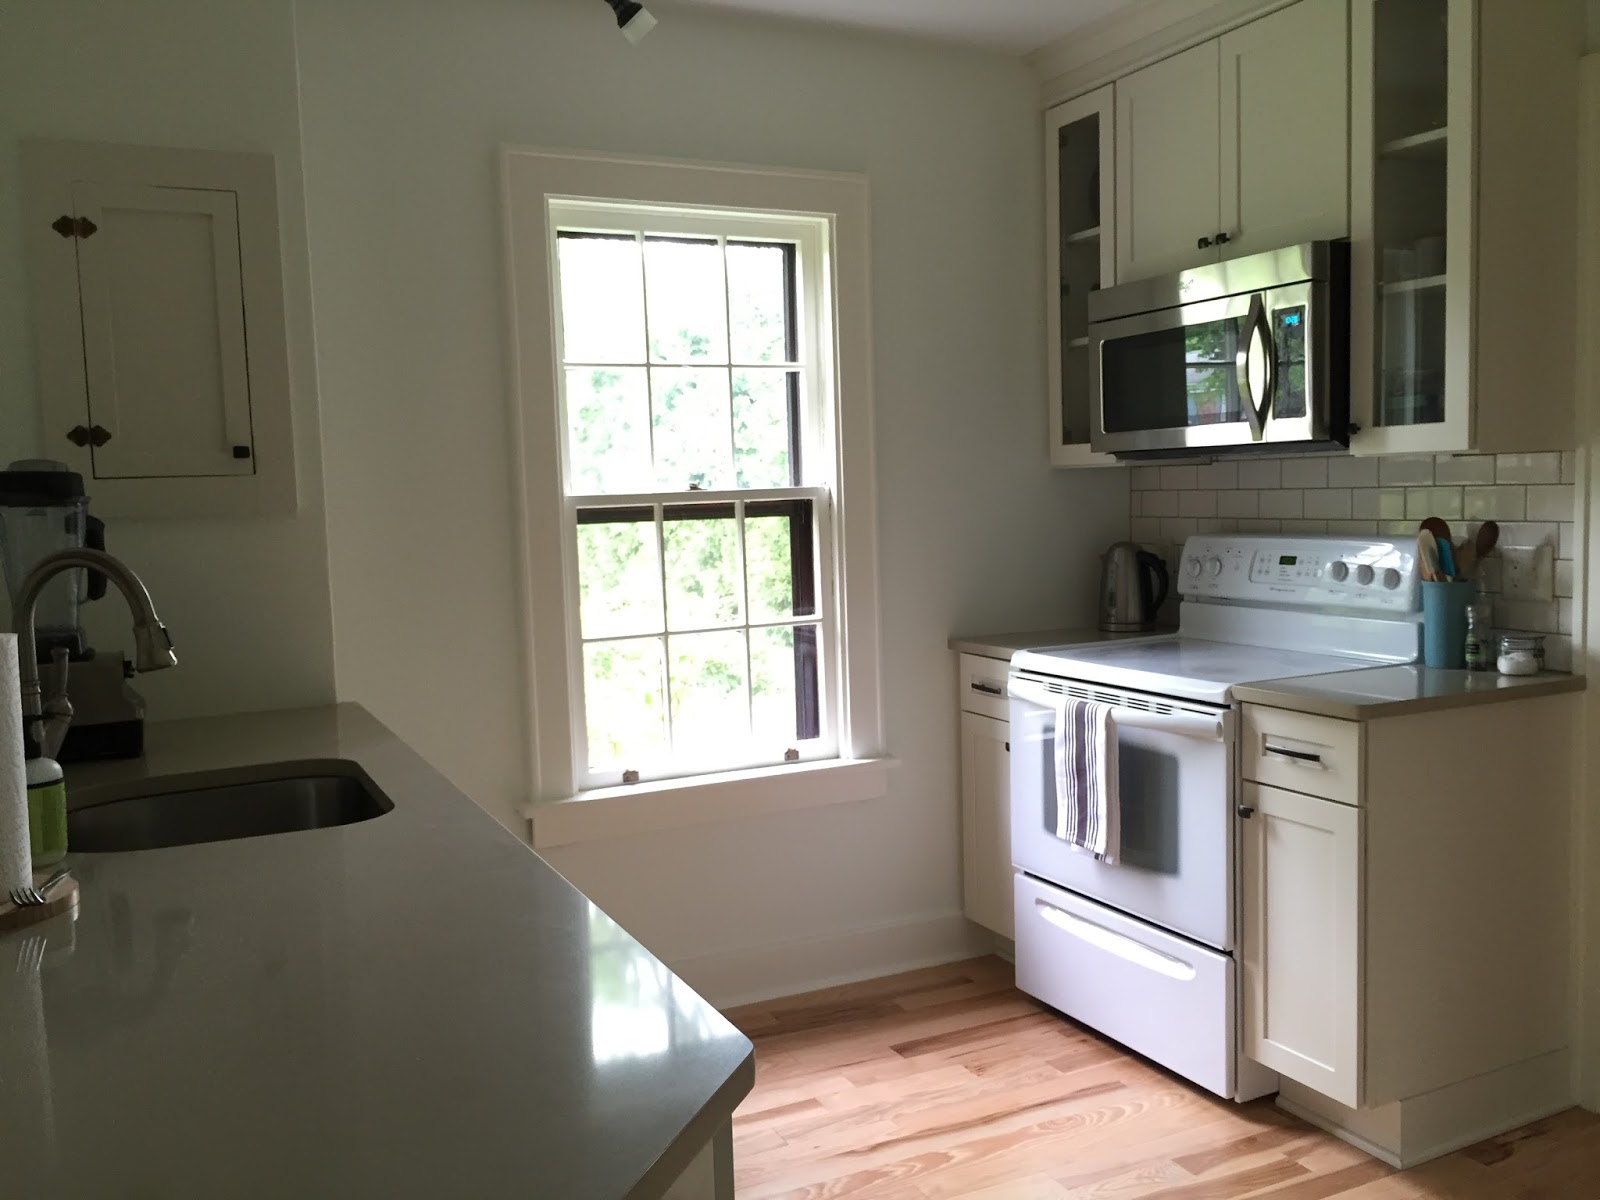 unspeakable visions: Our kitchen remodel